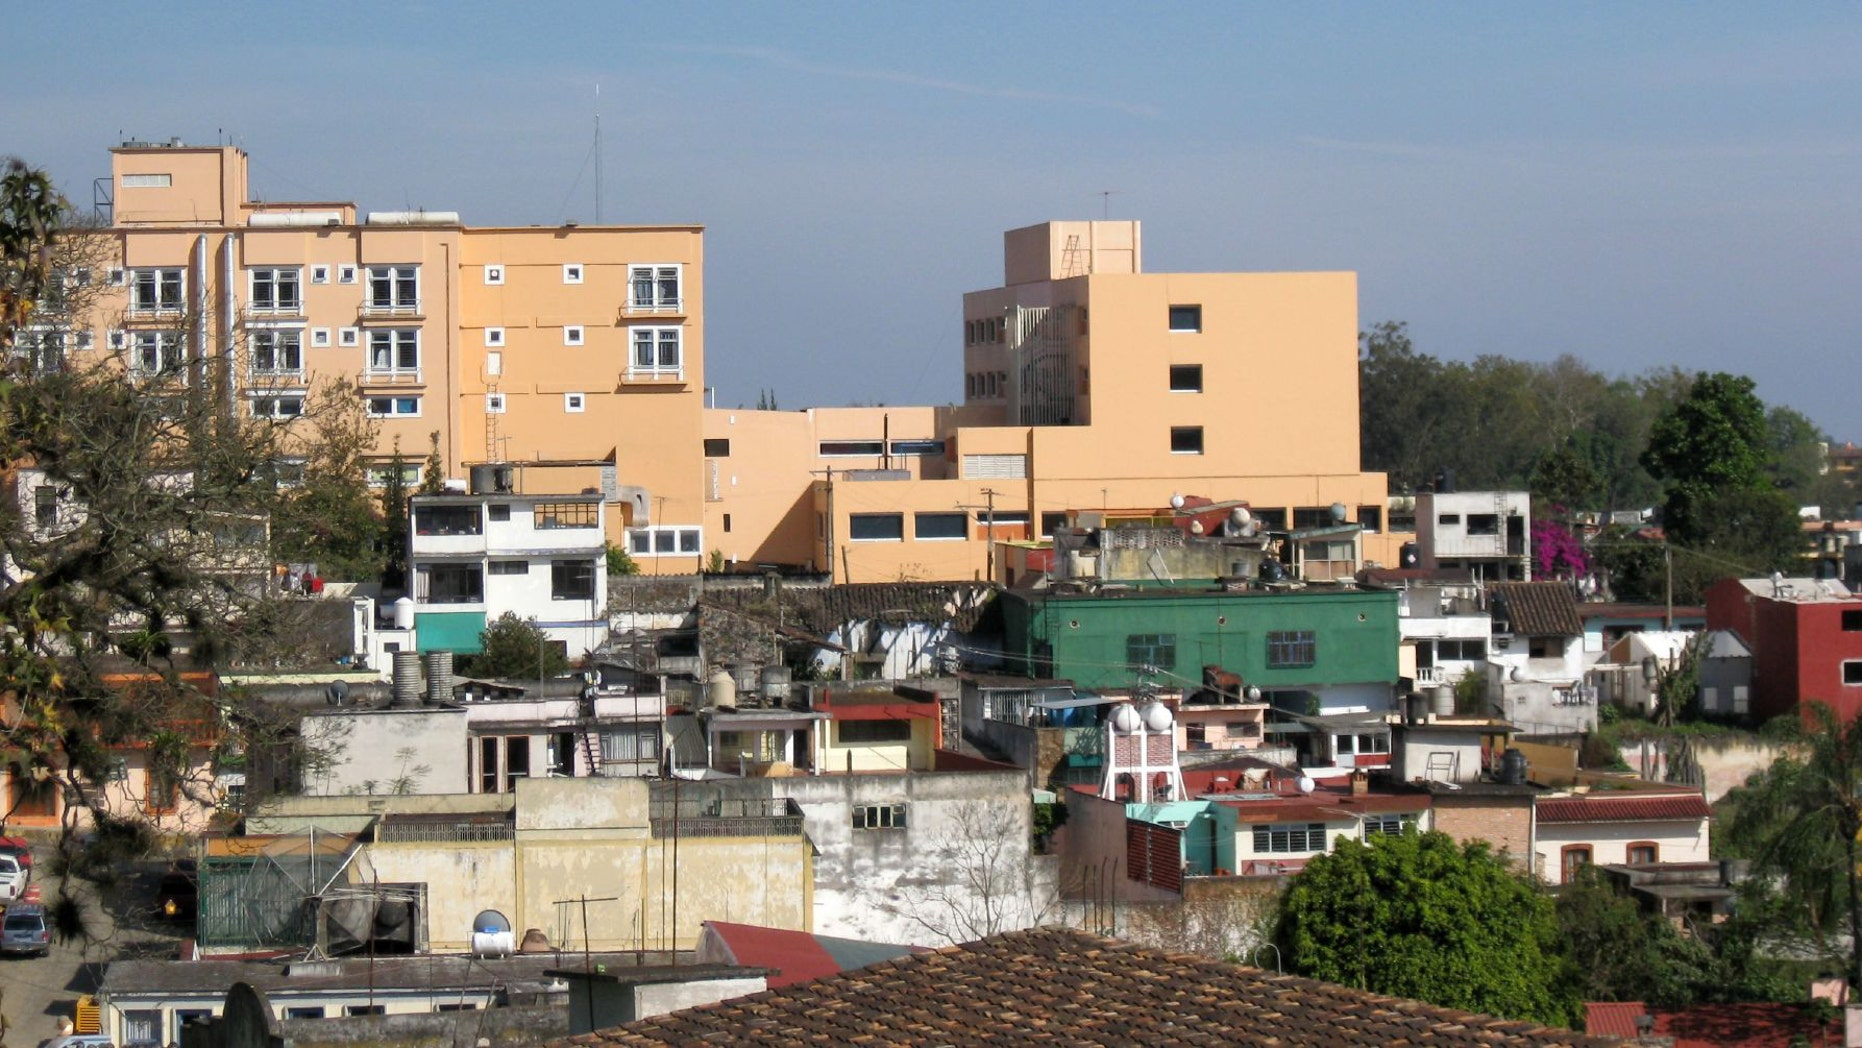 """The city of Xalapa, Veracruz. <a href=""""http://www.flickr.com/photos/swigart/2292456670/sizes/o/in/photostream/"""">(Flickr)</a>"""